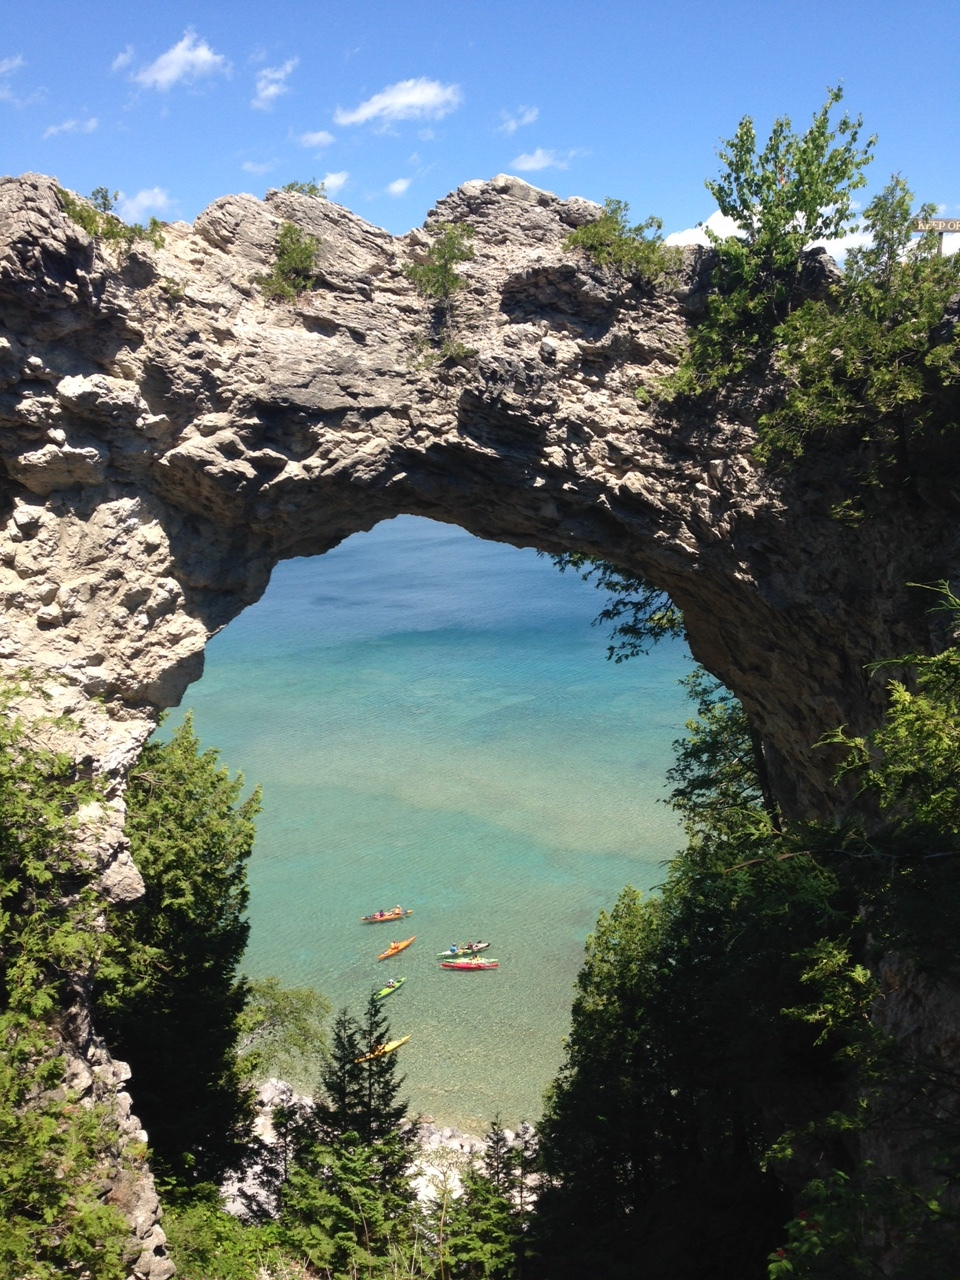 Arch rock with a view of the amazing colors of both lake and sky